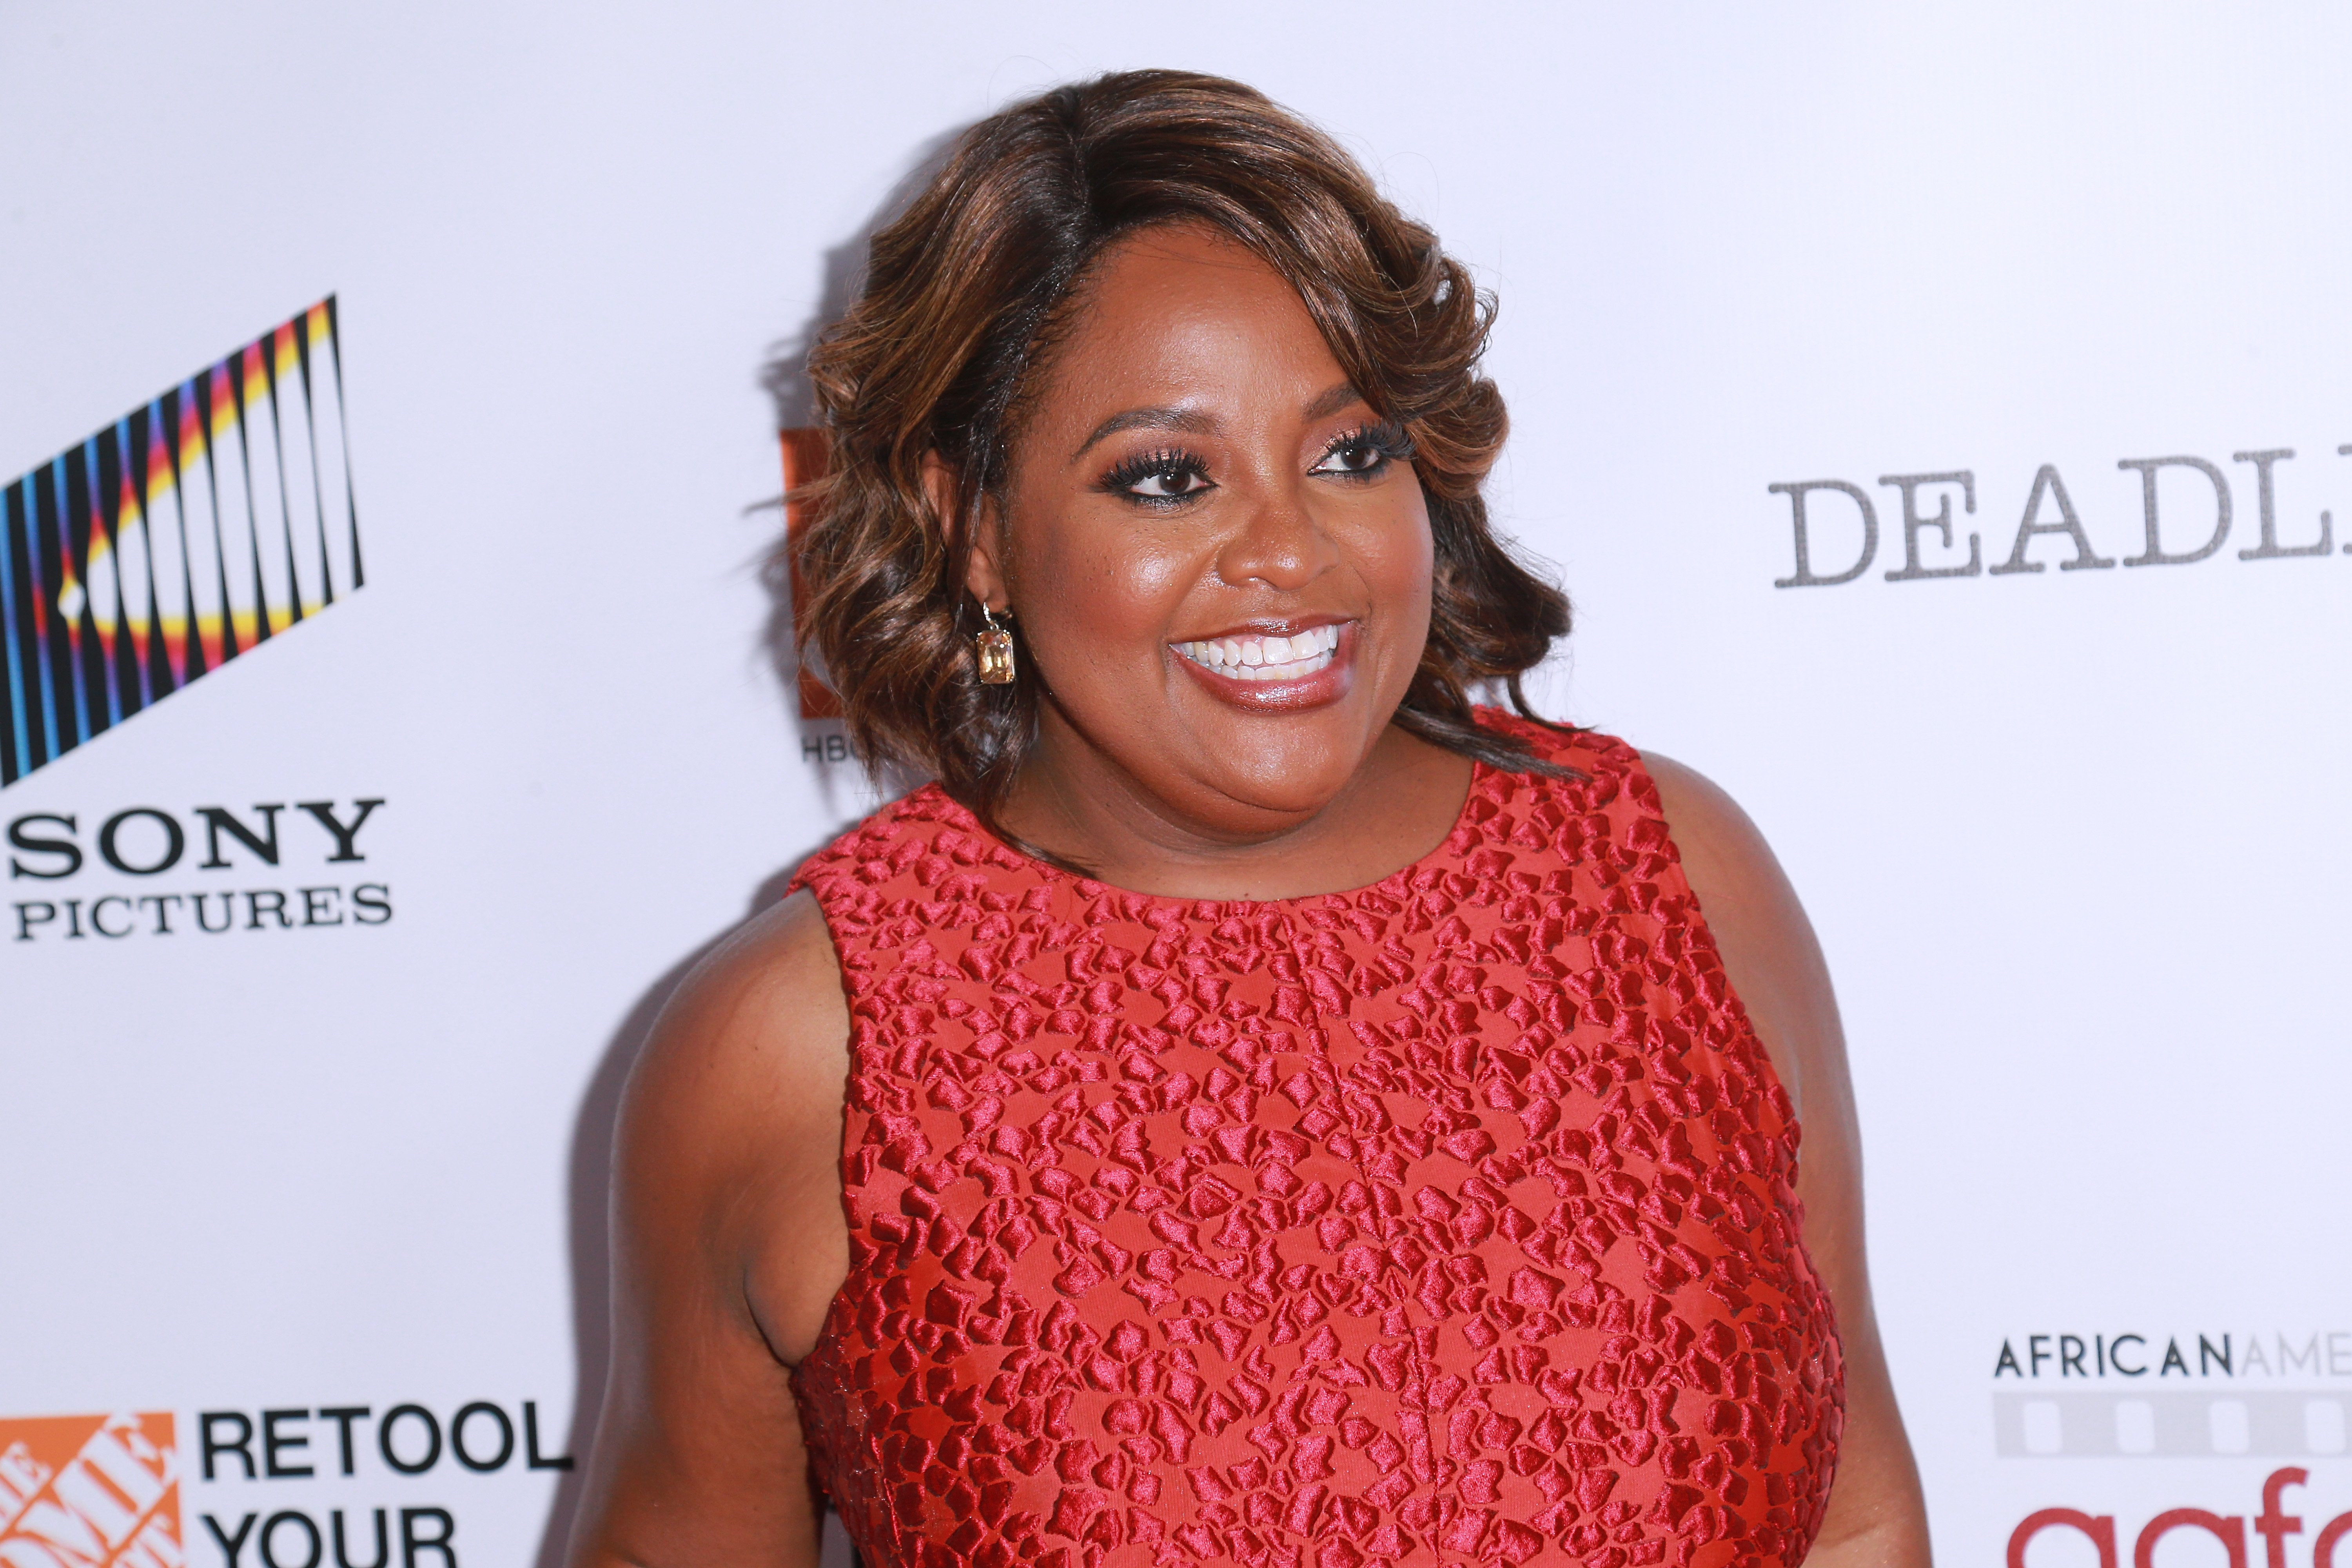 Actress Sherri Shepherd attends the 9th Annual AAFCA Awards at Taglyan Complex on February 7, 2018. | Photo: Getty Images